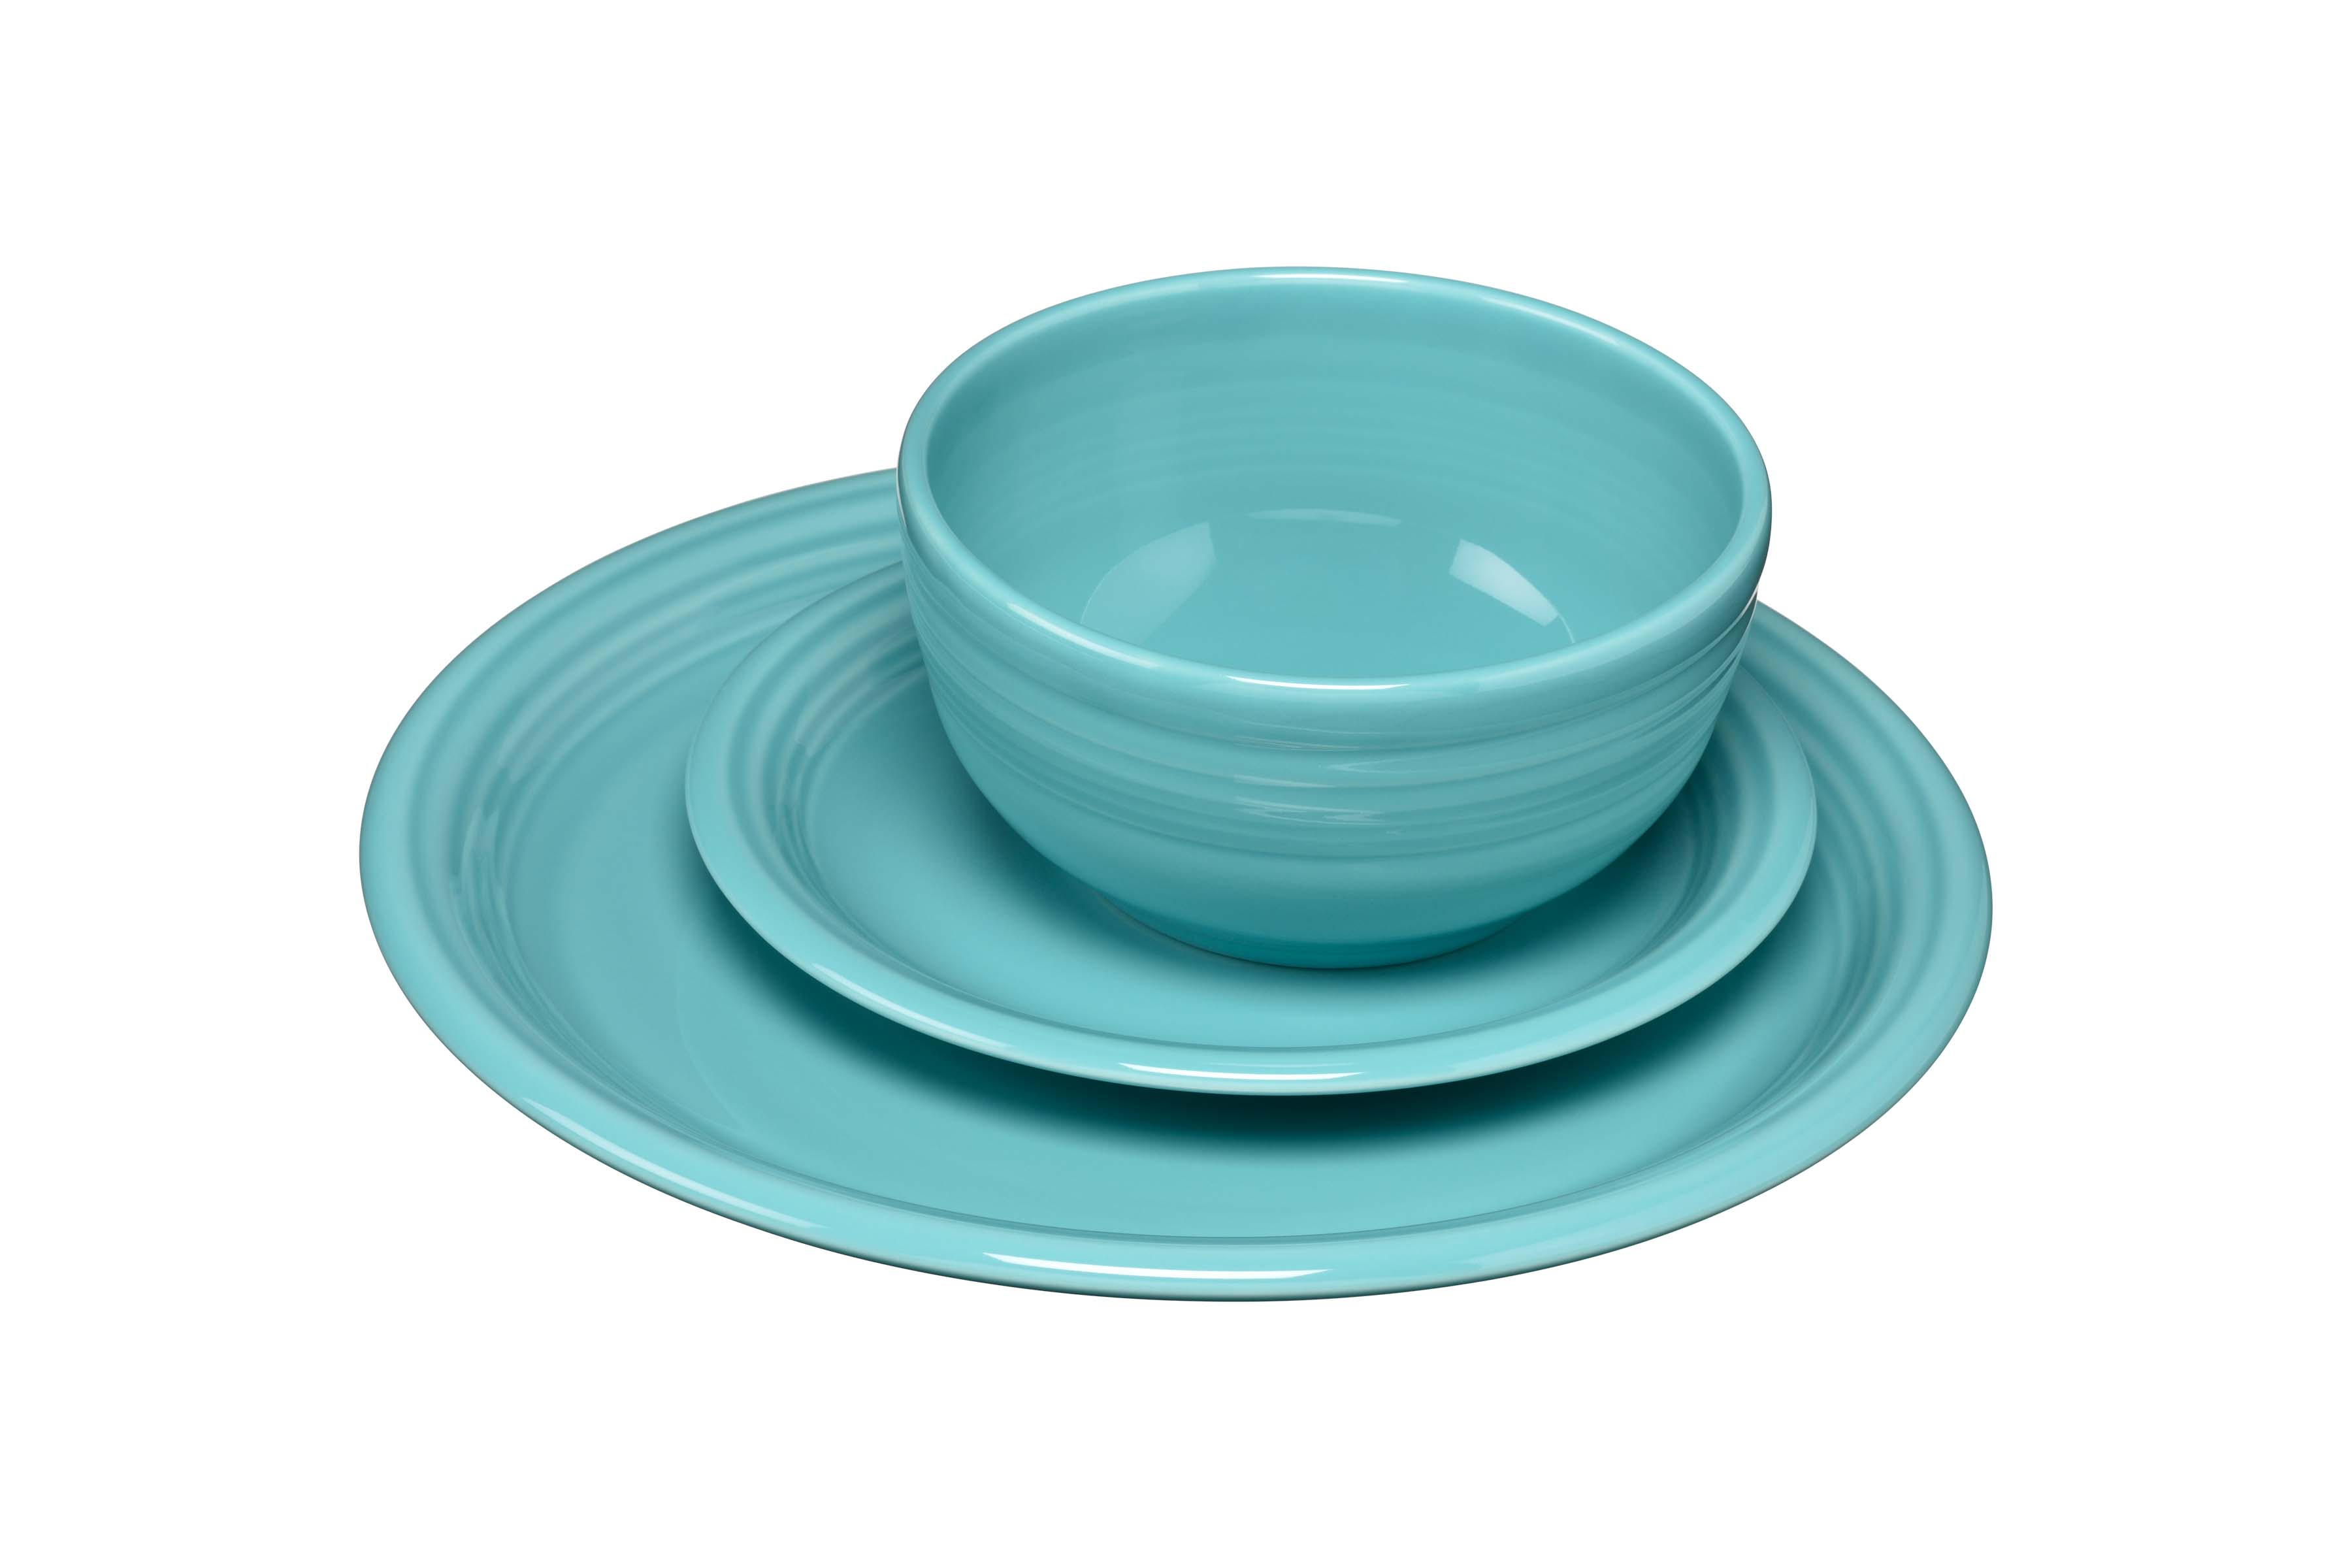 Just the Basics: Essential Dinnerware for a First House or ...